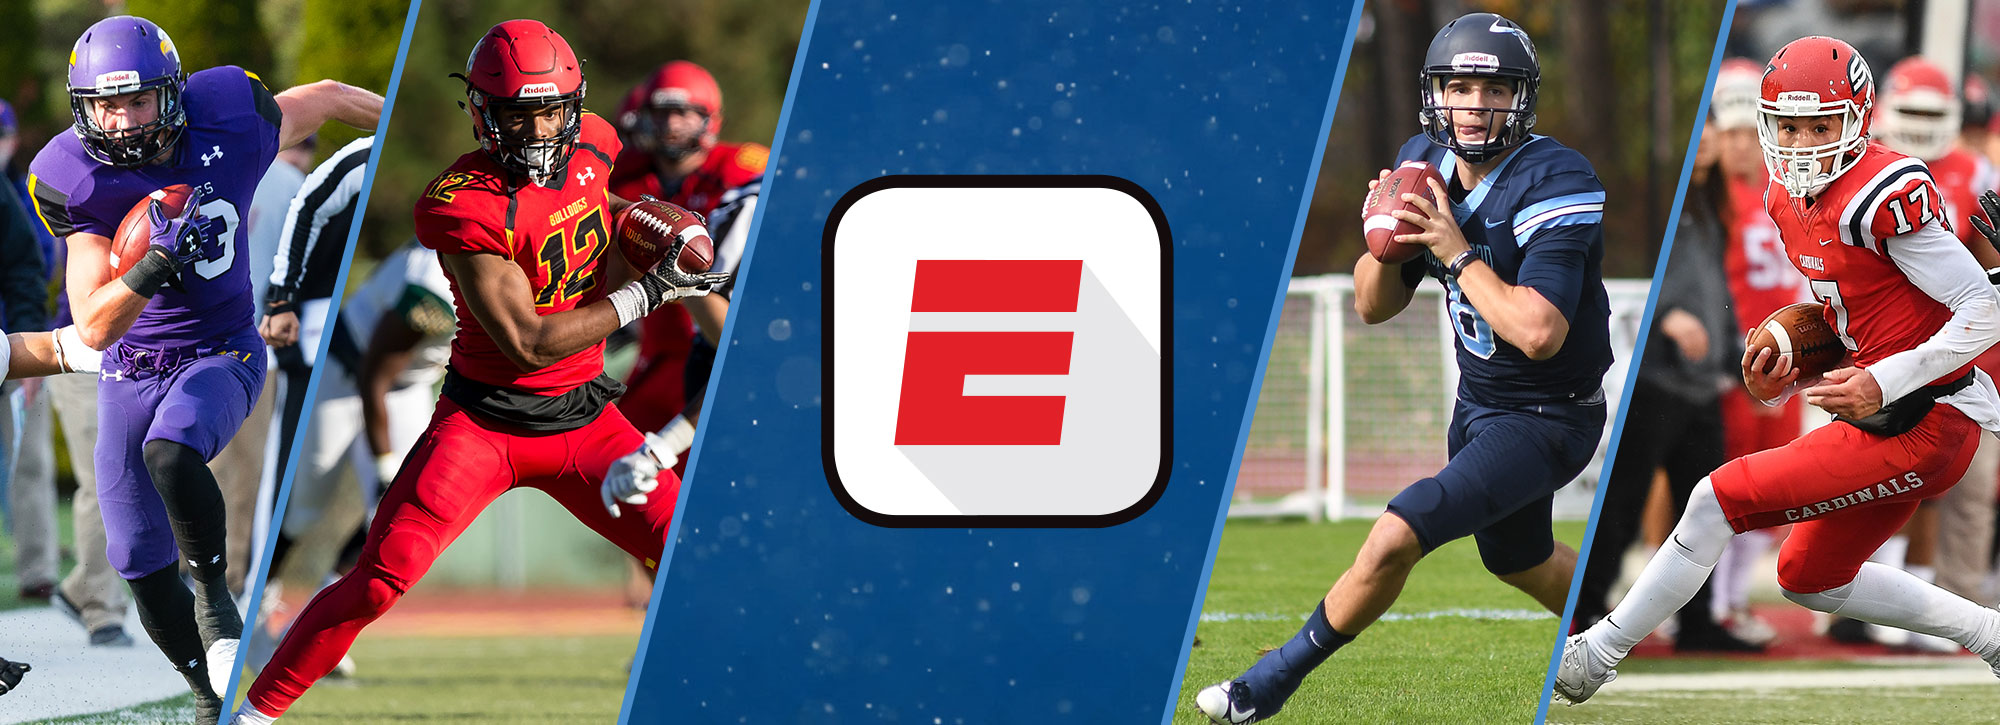 Two GLIAC Football Matchups Slated for Division II Football Showcase